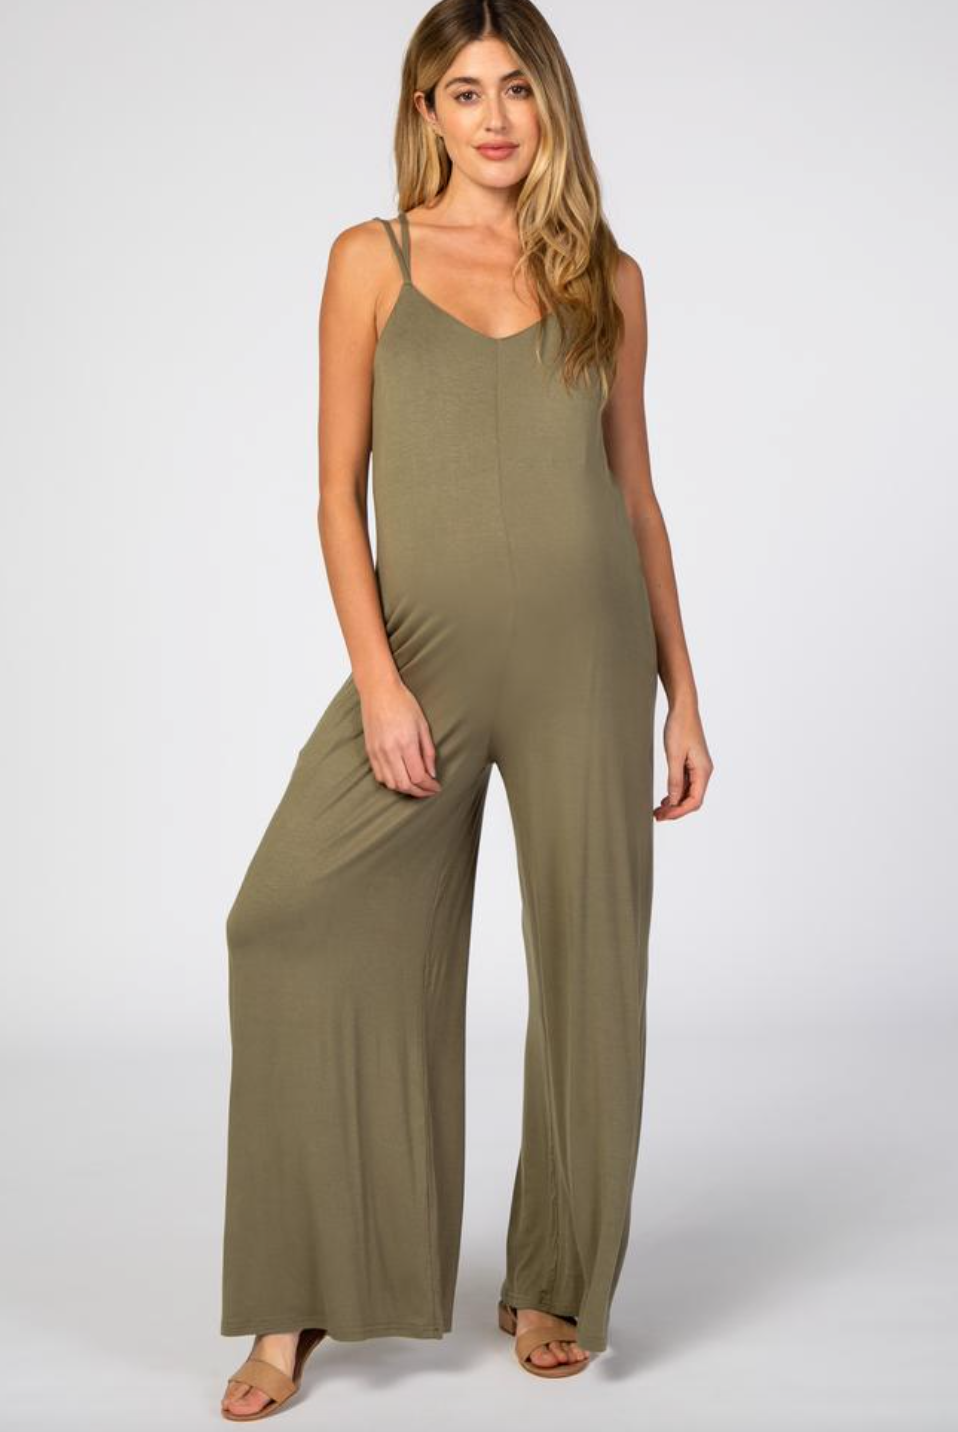 olive maternity overalls for moms